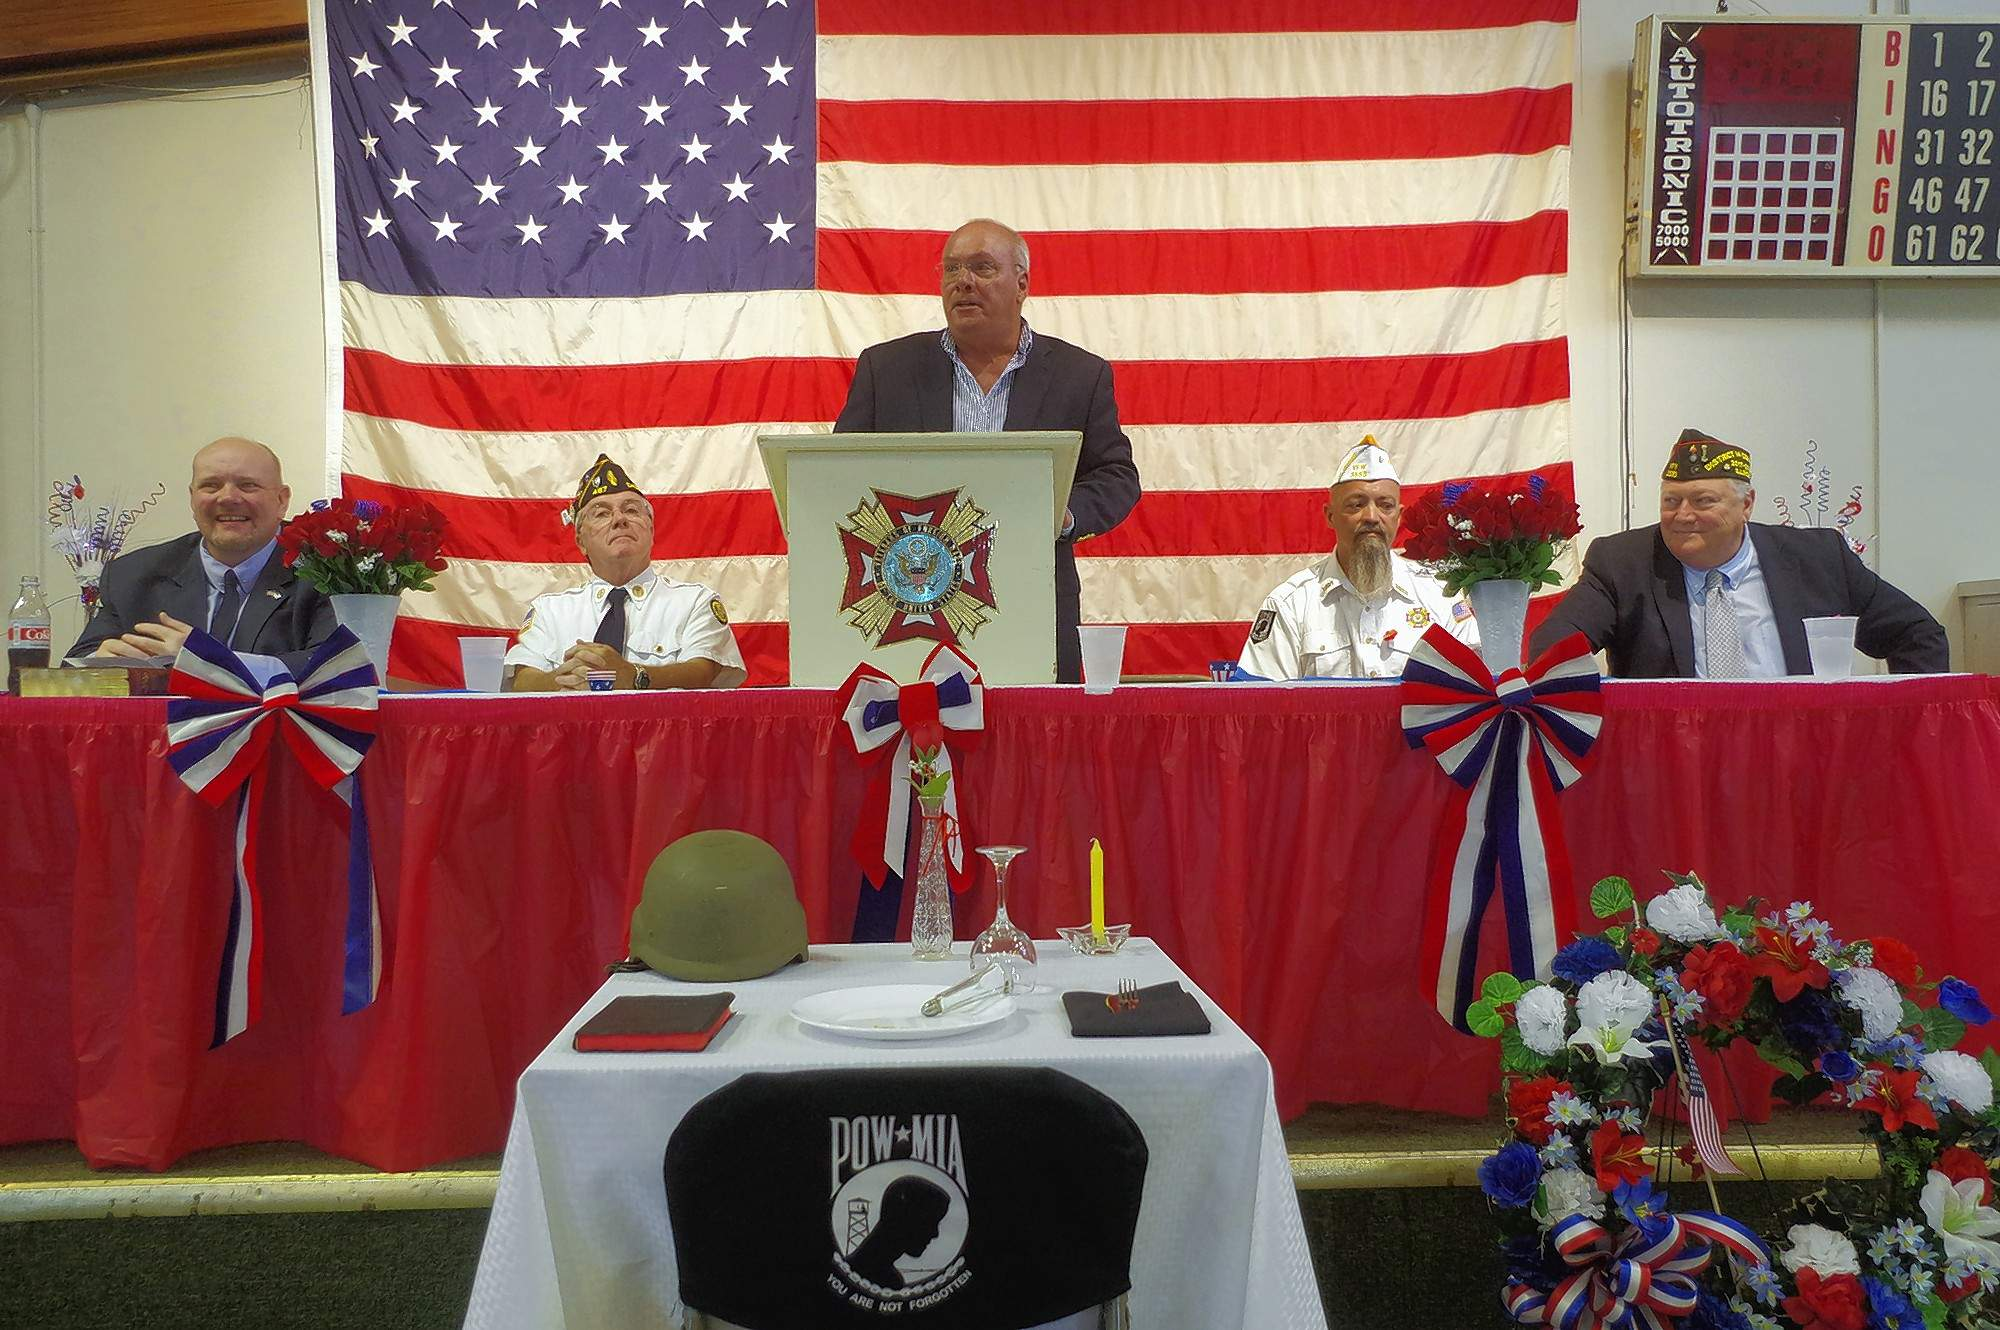 Dignitaries on stage at the 2018 Chester Memorial Day Service listen to Mayor Tom Page as he addresses a large crowd May 28. From left, Rev. Mike Fogerson of First Baptist Church in Chester; Jeff Warhausen, commander, Chester American Legion Post 487; Chester Mayor Tom Page; Tony Payne, commander of Chester VFW Post 3553; and Josh Barrett, commander of VFW District 14.